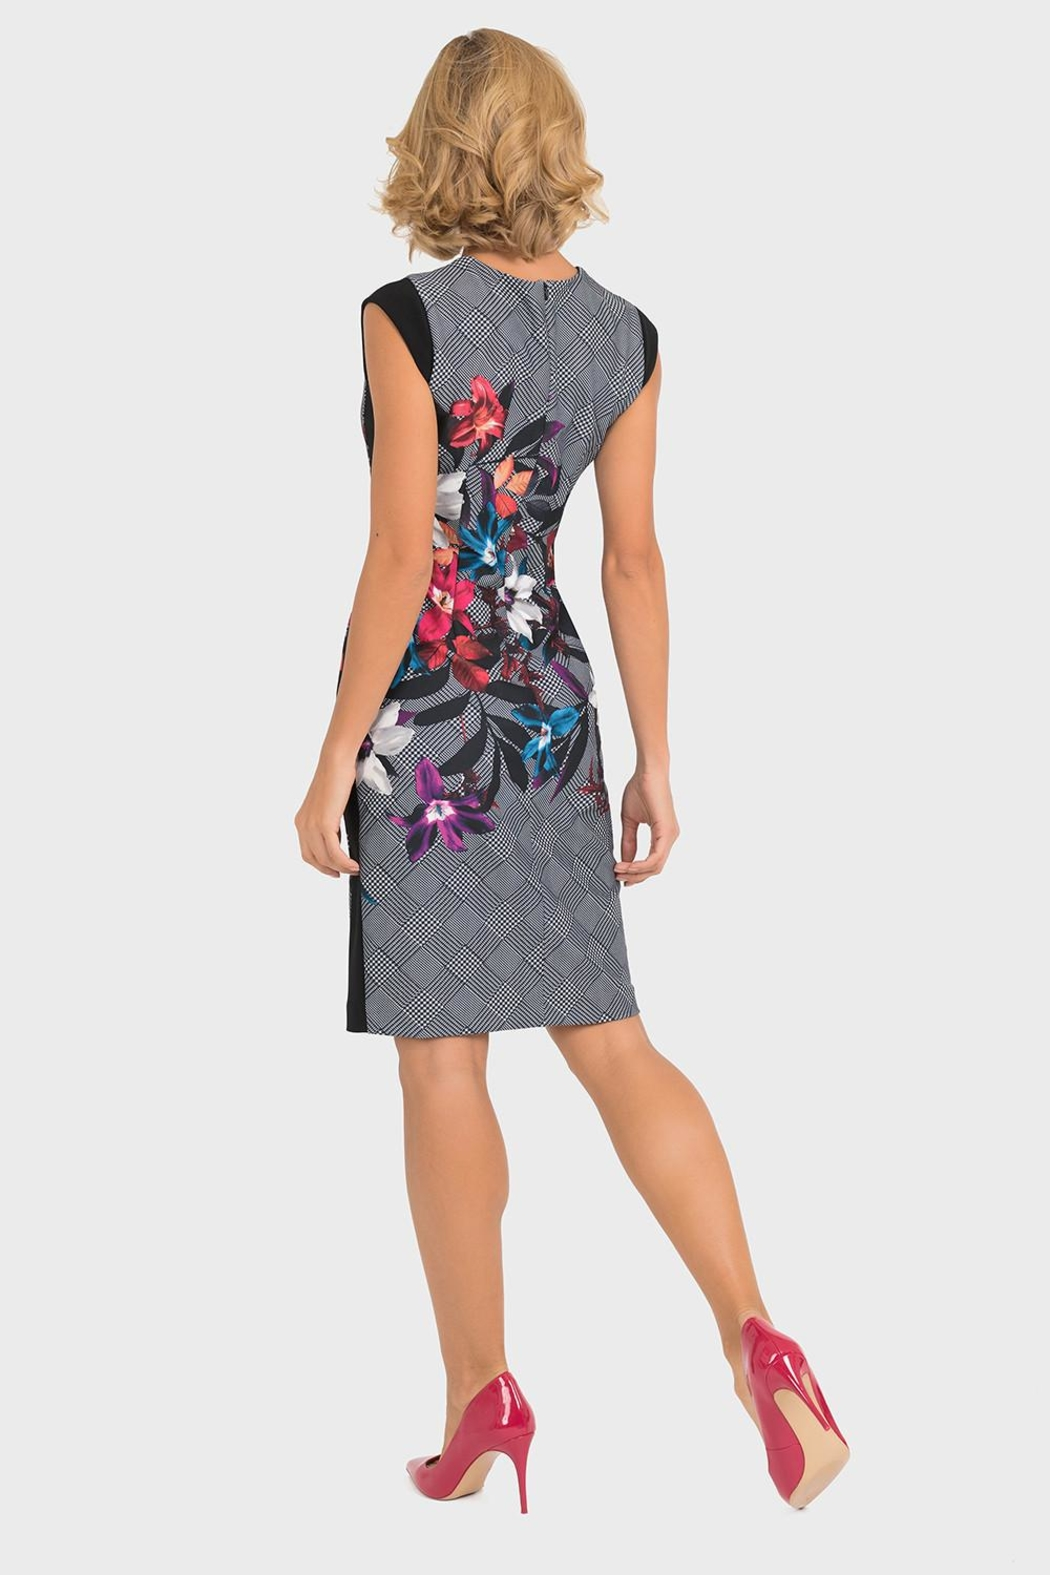 Joseph Ribkoff Houndstooth Floral Dress - Front Full Image